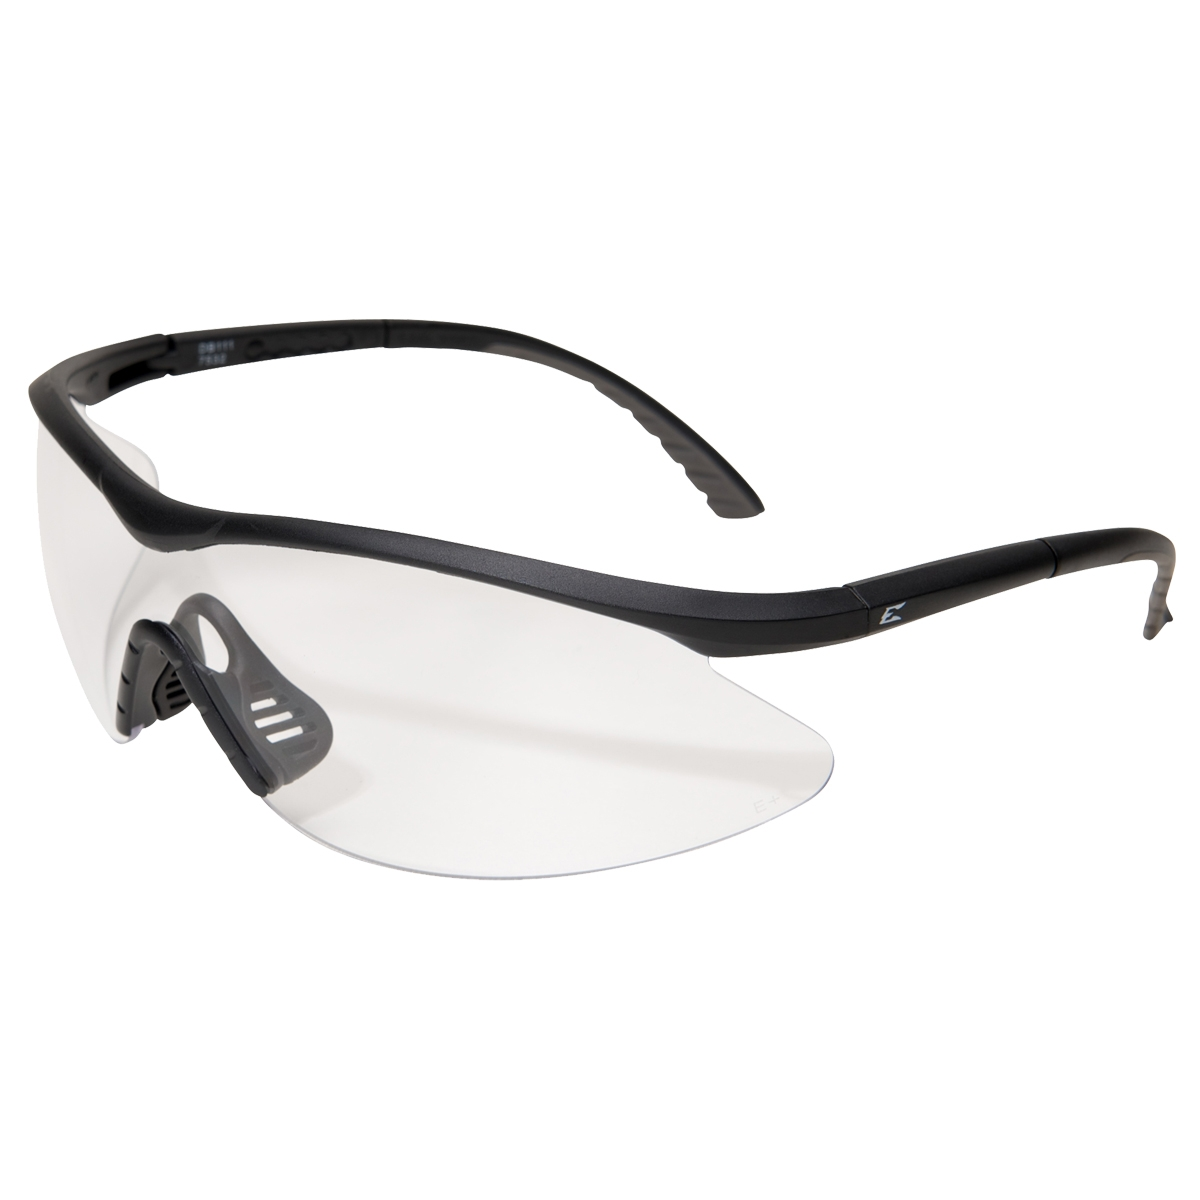 Black Frame Glasses Clear Lens : Edge DB111 Banraj Safety Glasses - Black Frame - Clear ...